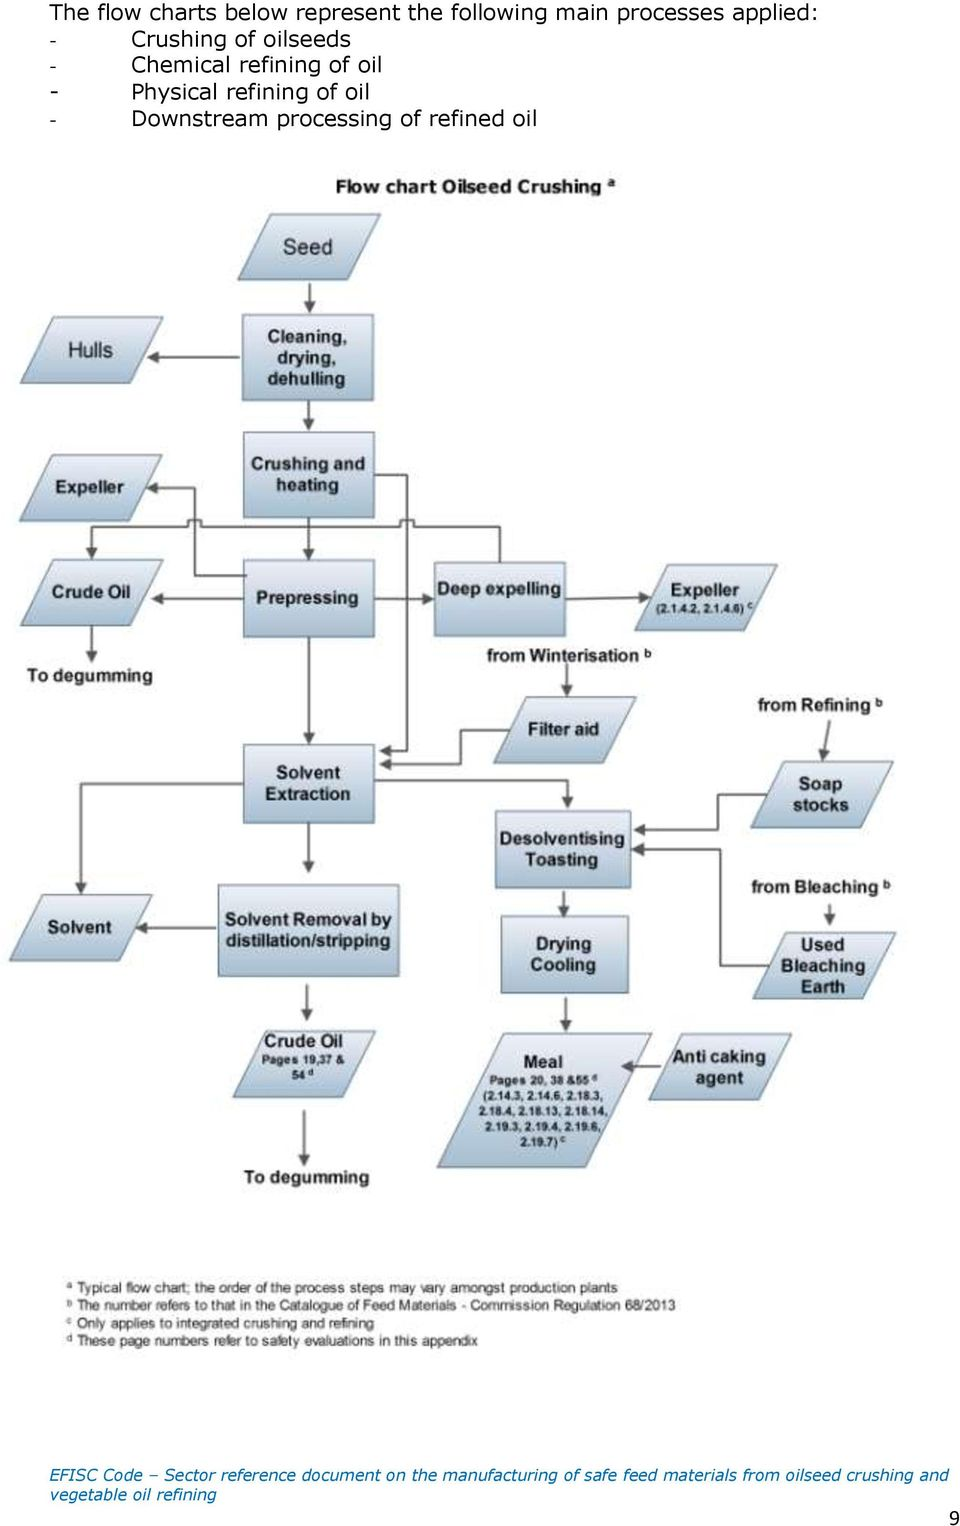 - Chemical refining of oil - Physical refining